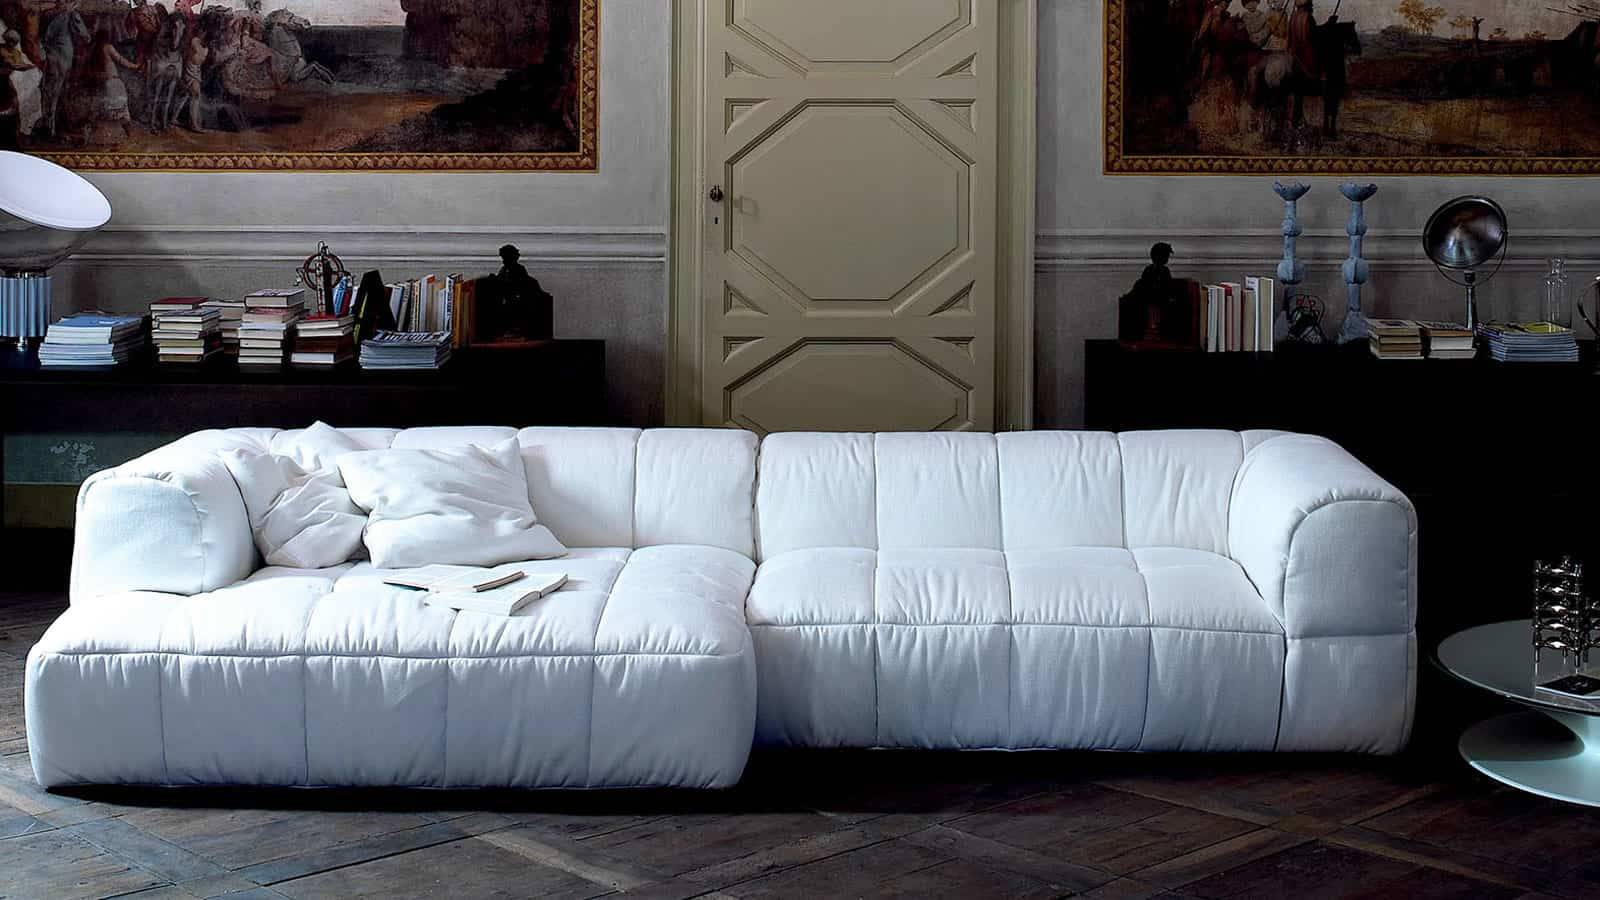 upholstered design furniture by Cini Boeri per Arflex